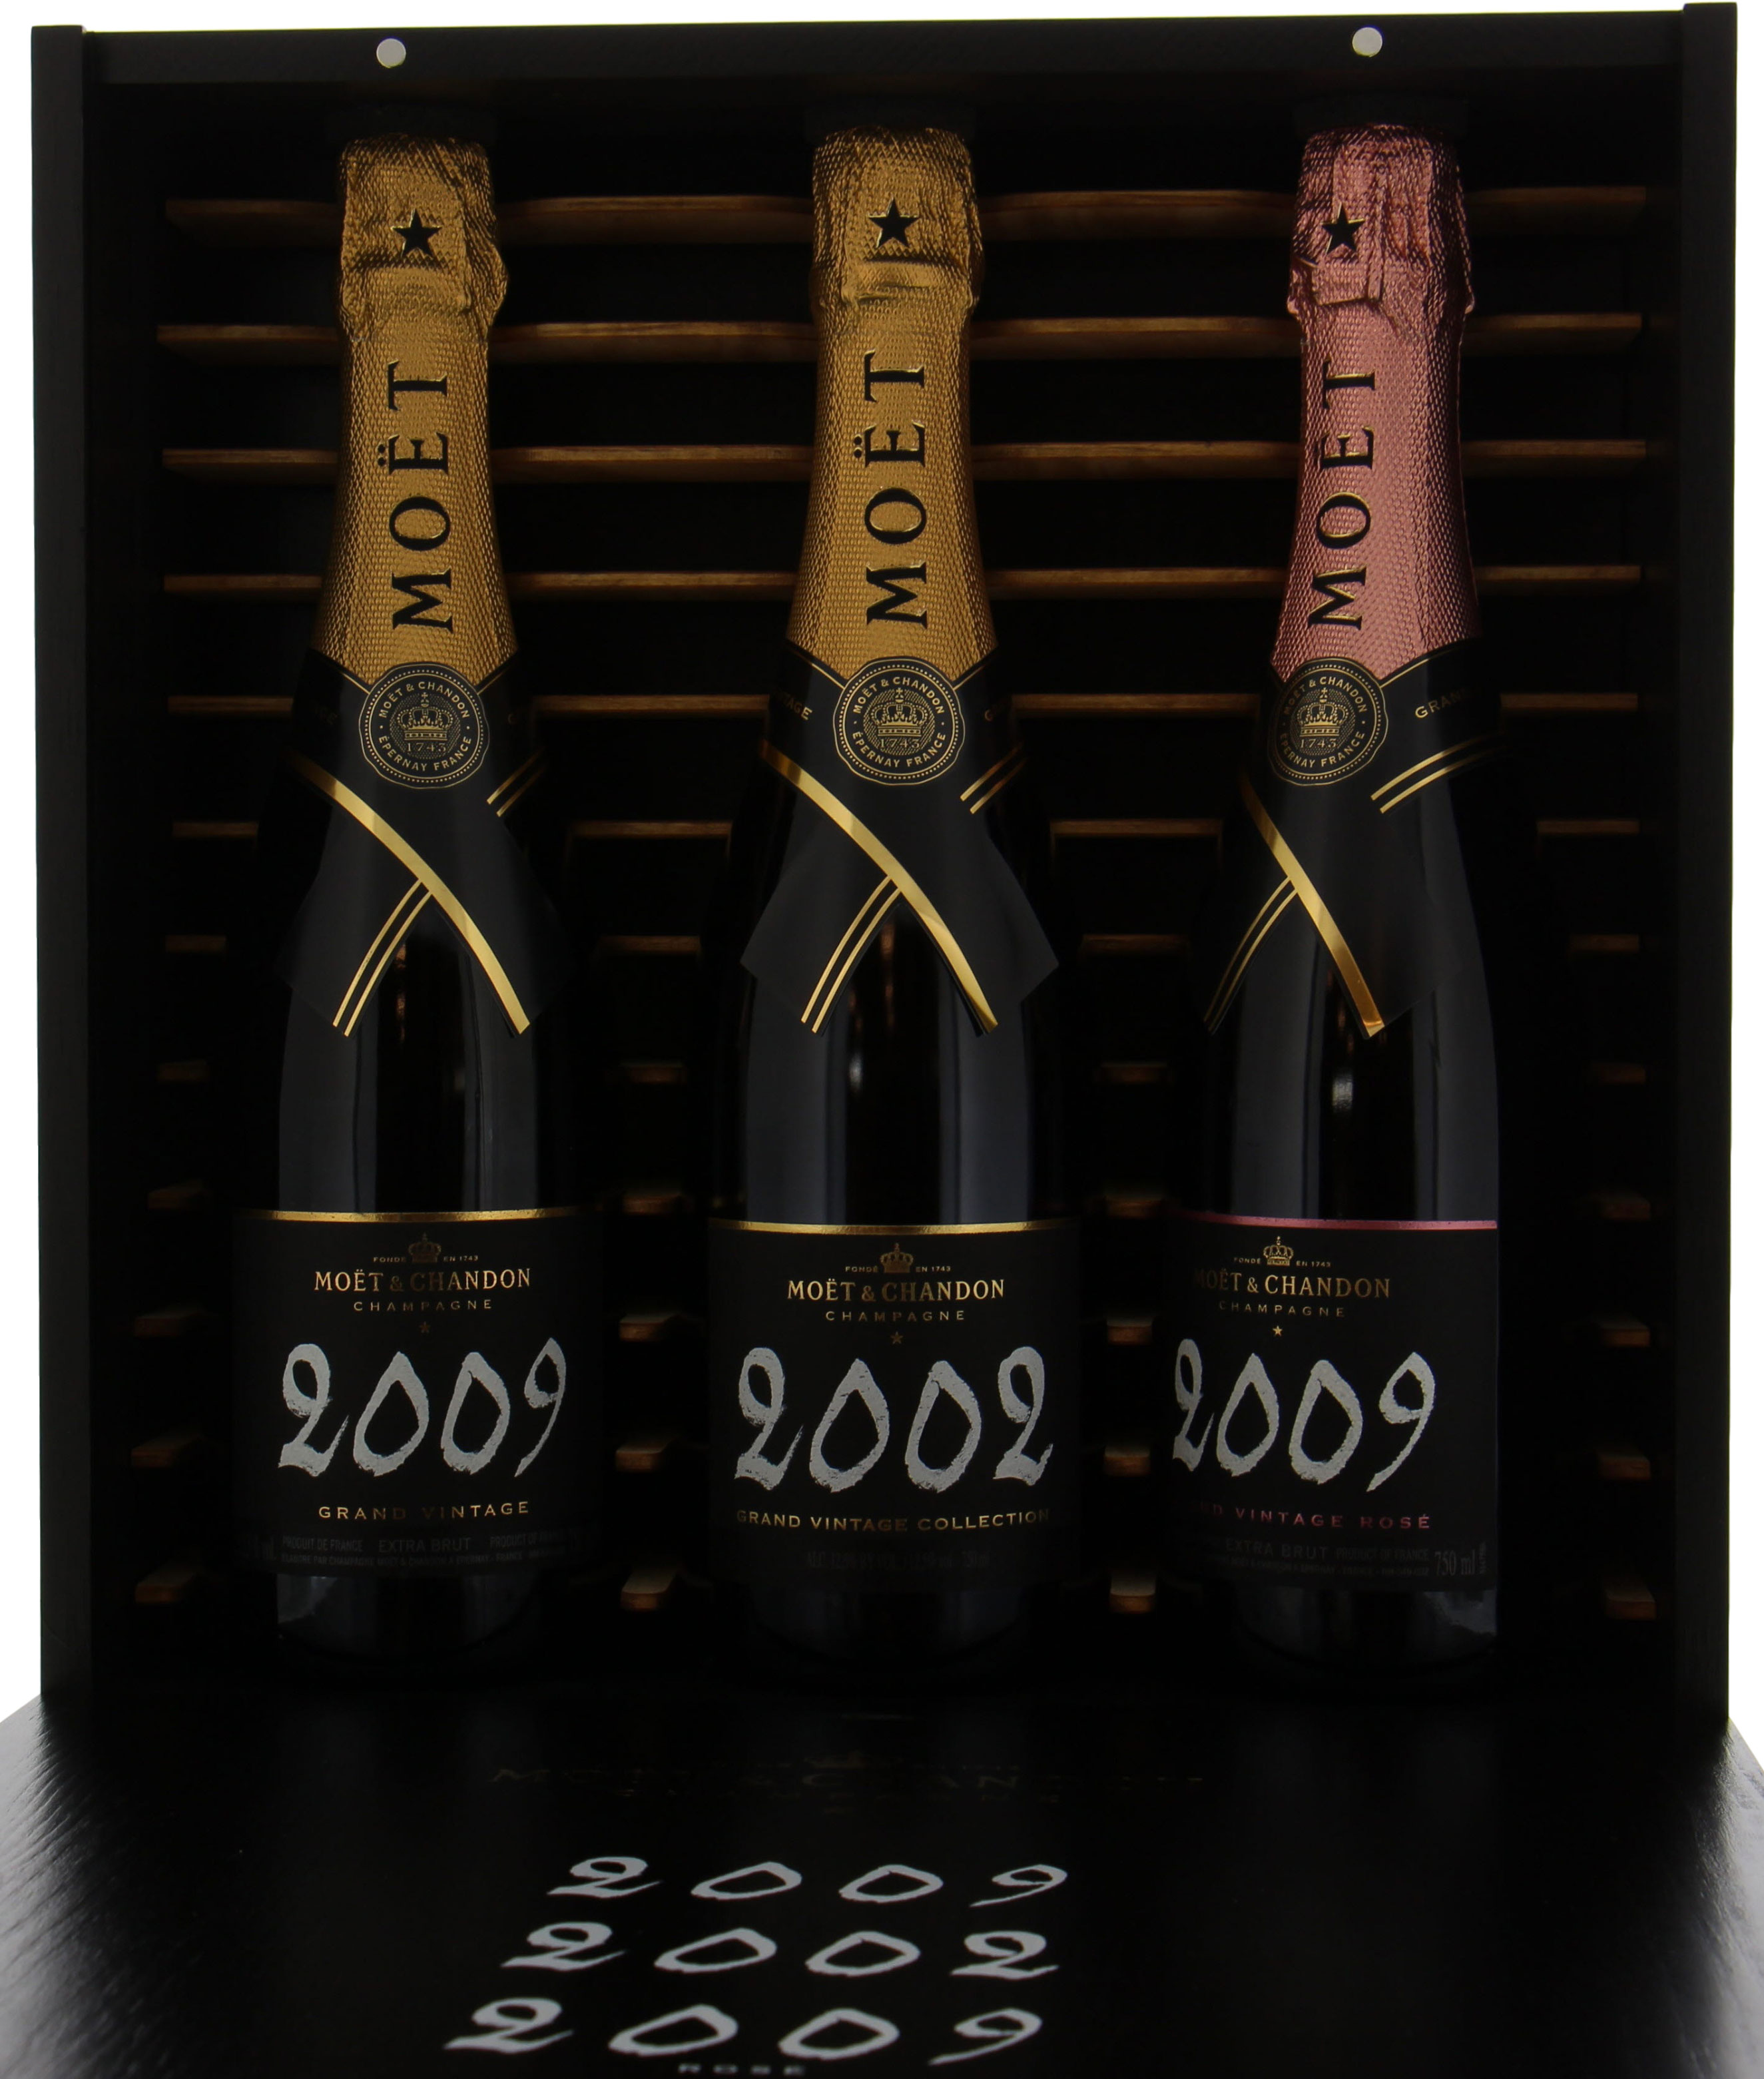 Moet Chandon - Grand Vintage Brut 2002-2009 Rose 2009 2002